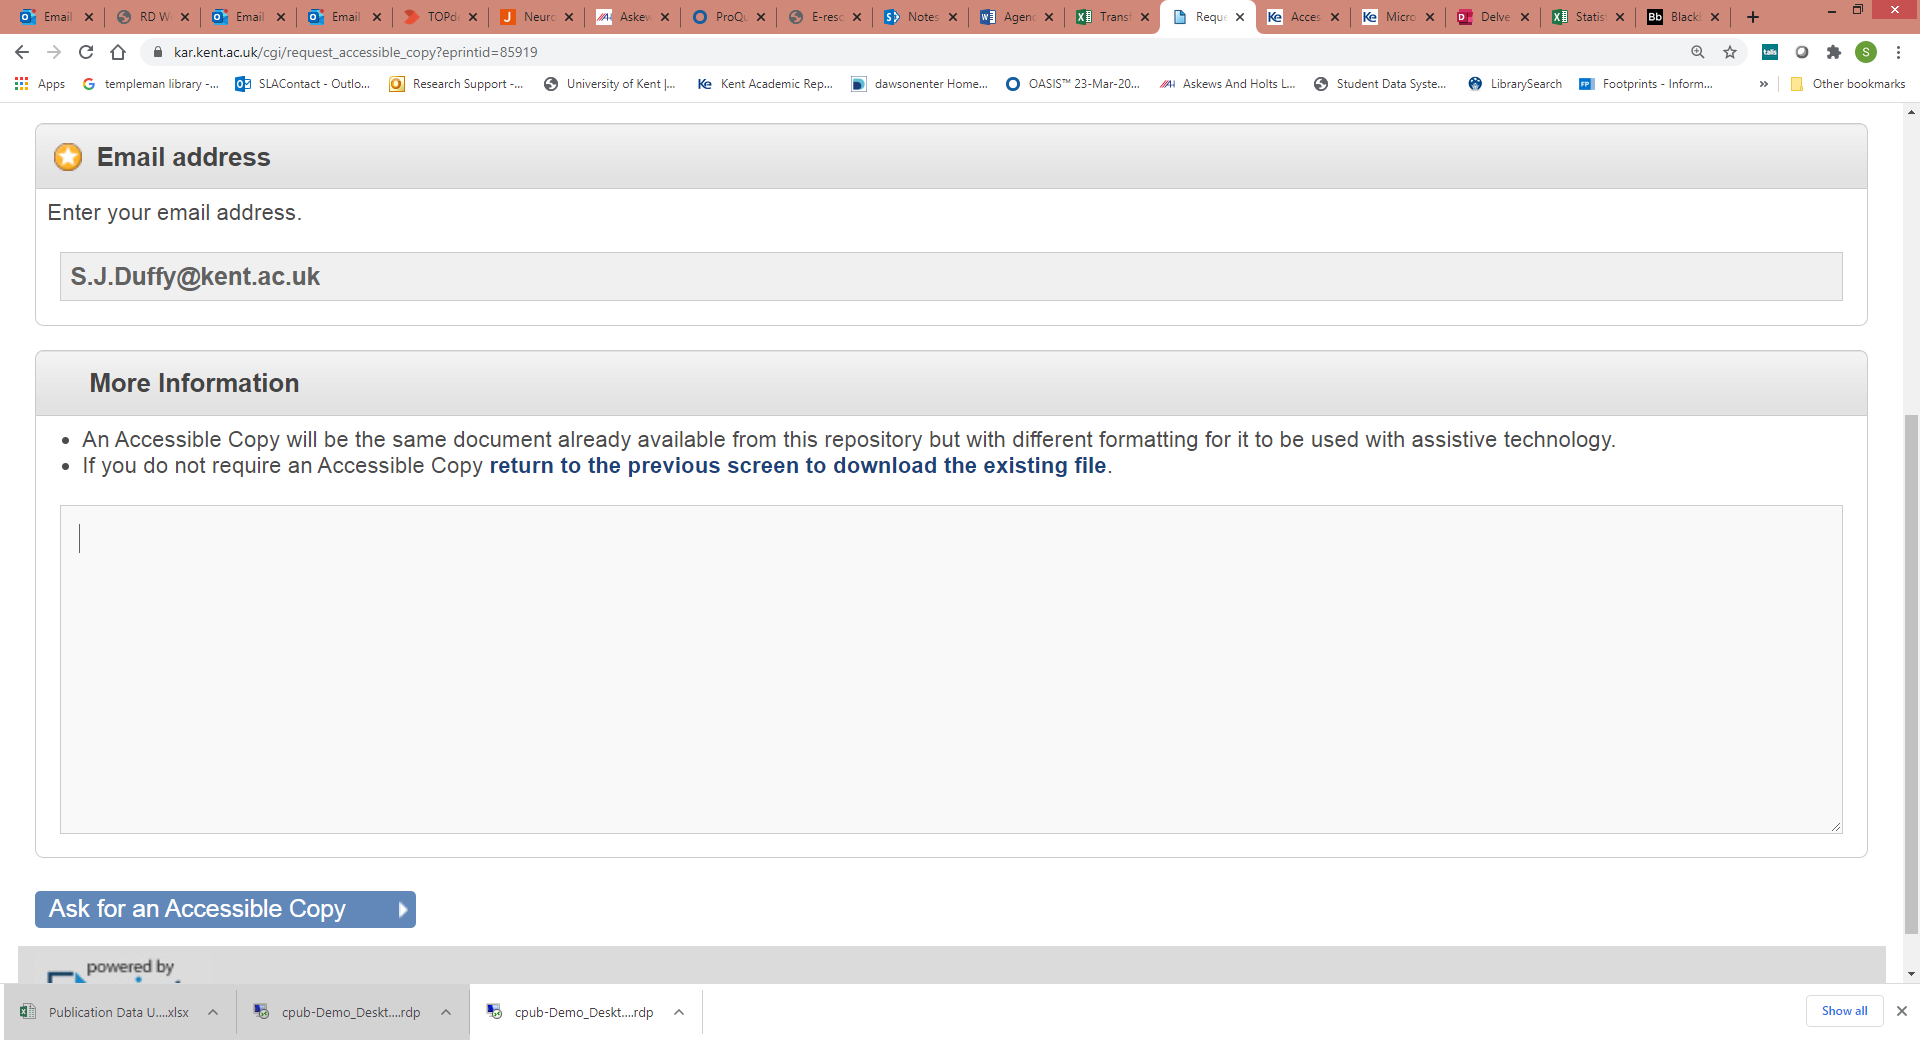 Screenshot showing the submit page that displays when users request an accessible version